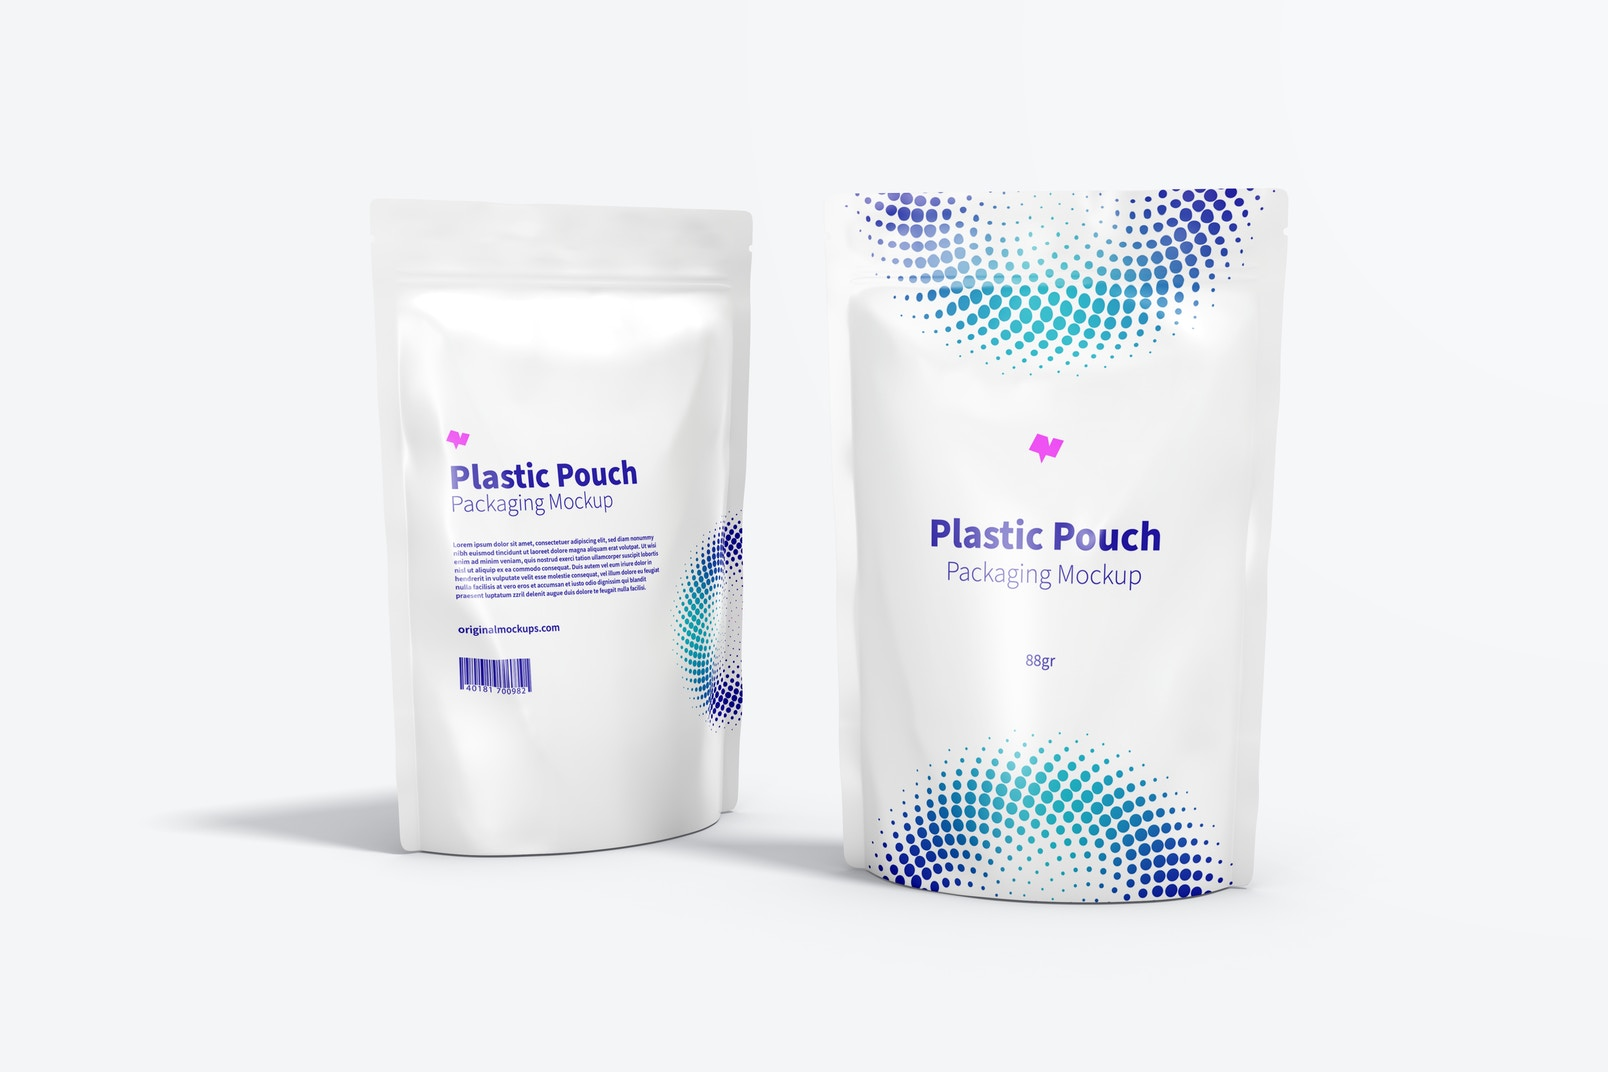 Plastic Pouches Packaging Mockup